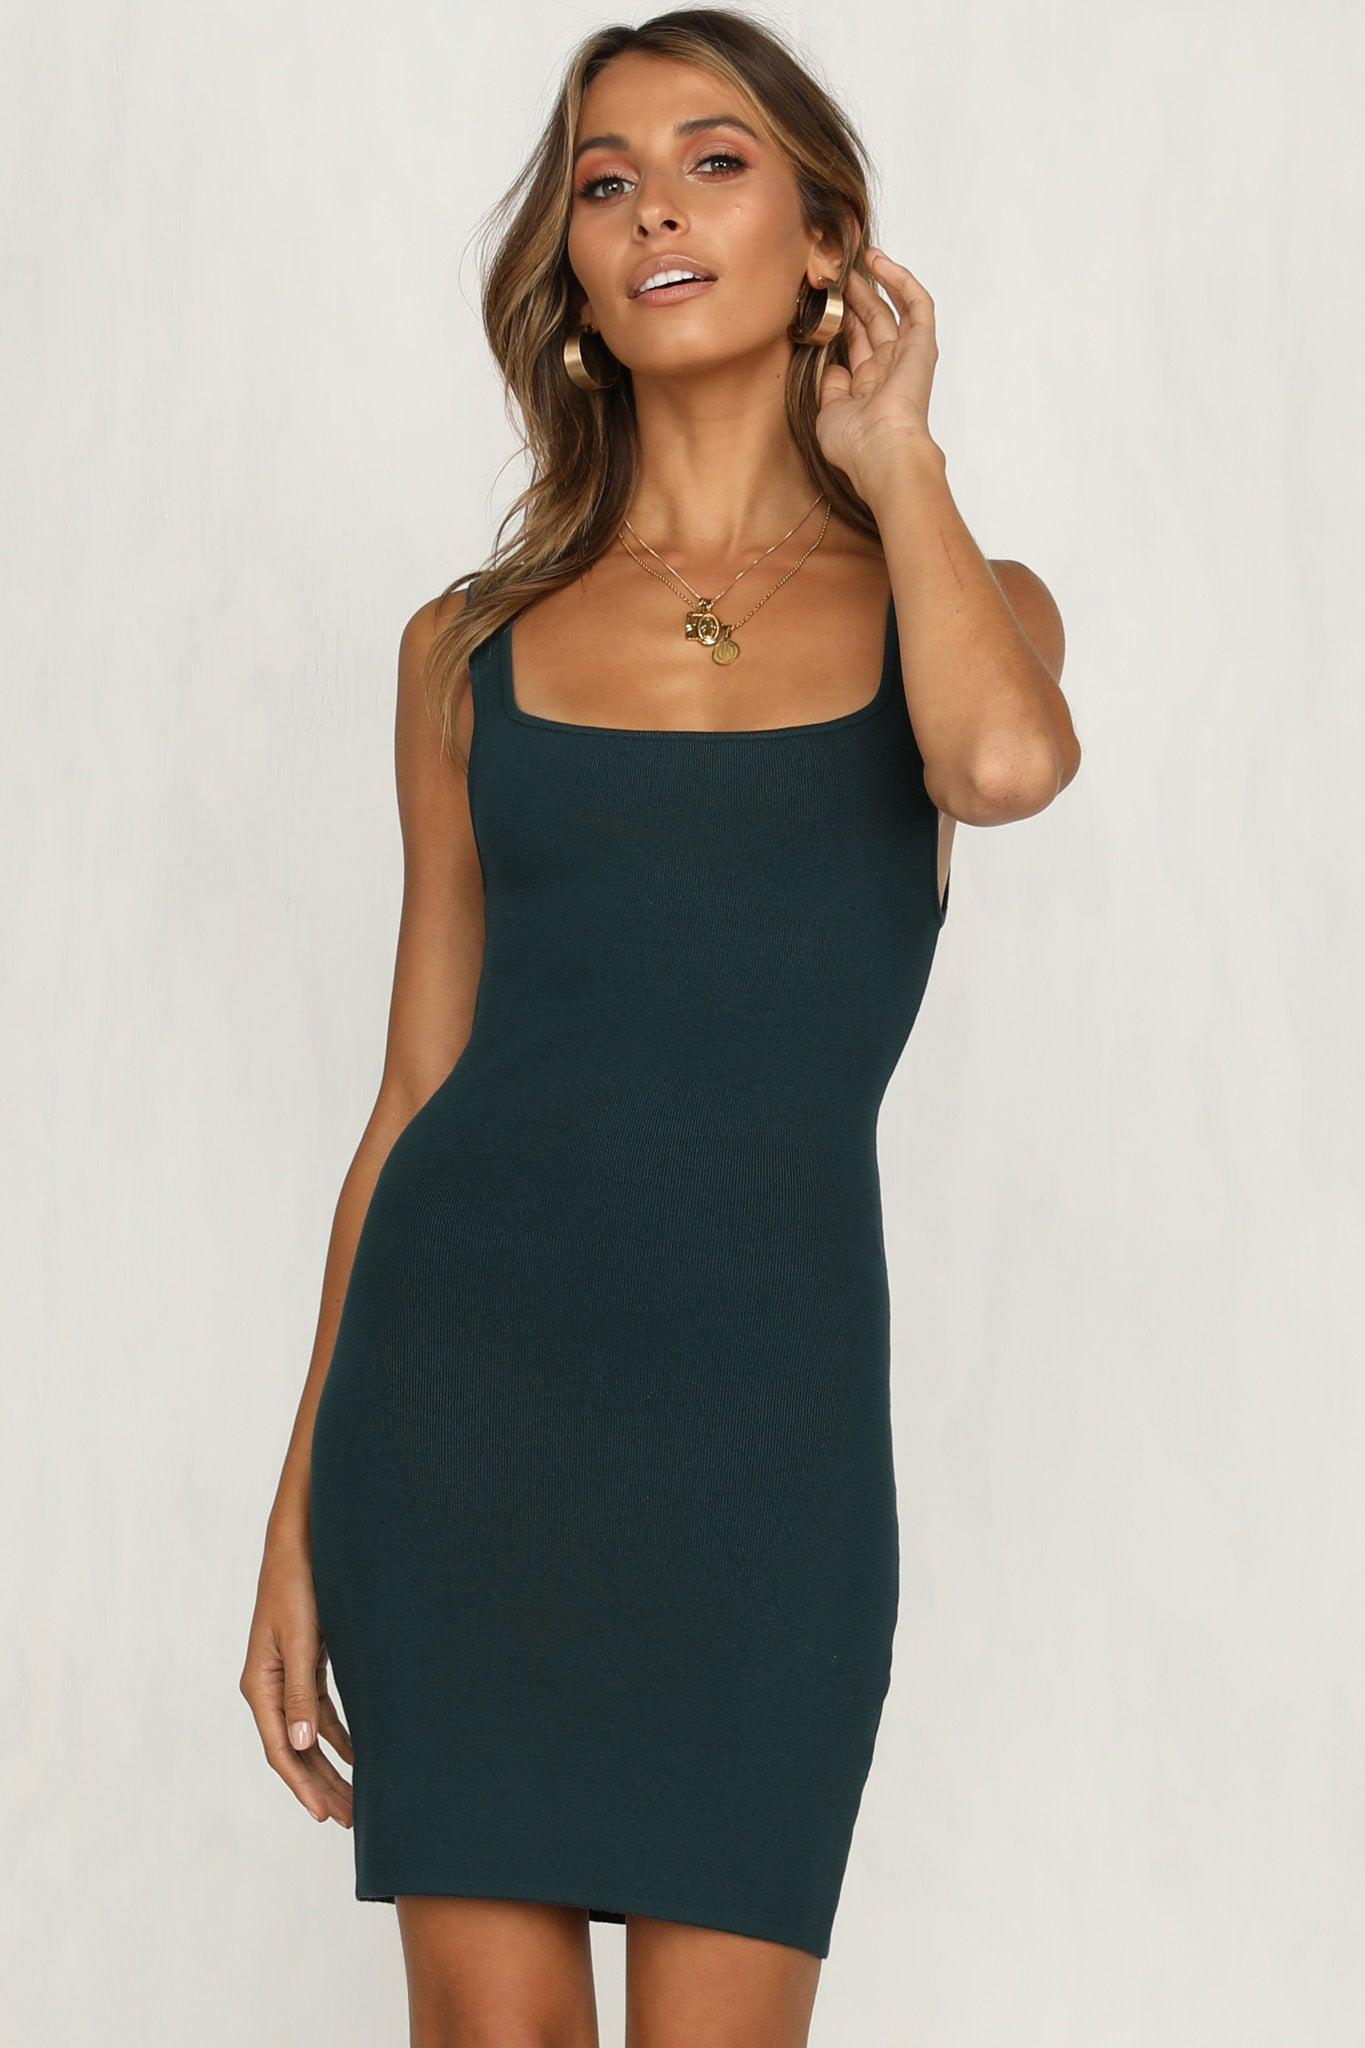 Arizona Knit Dress (Teal)